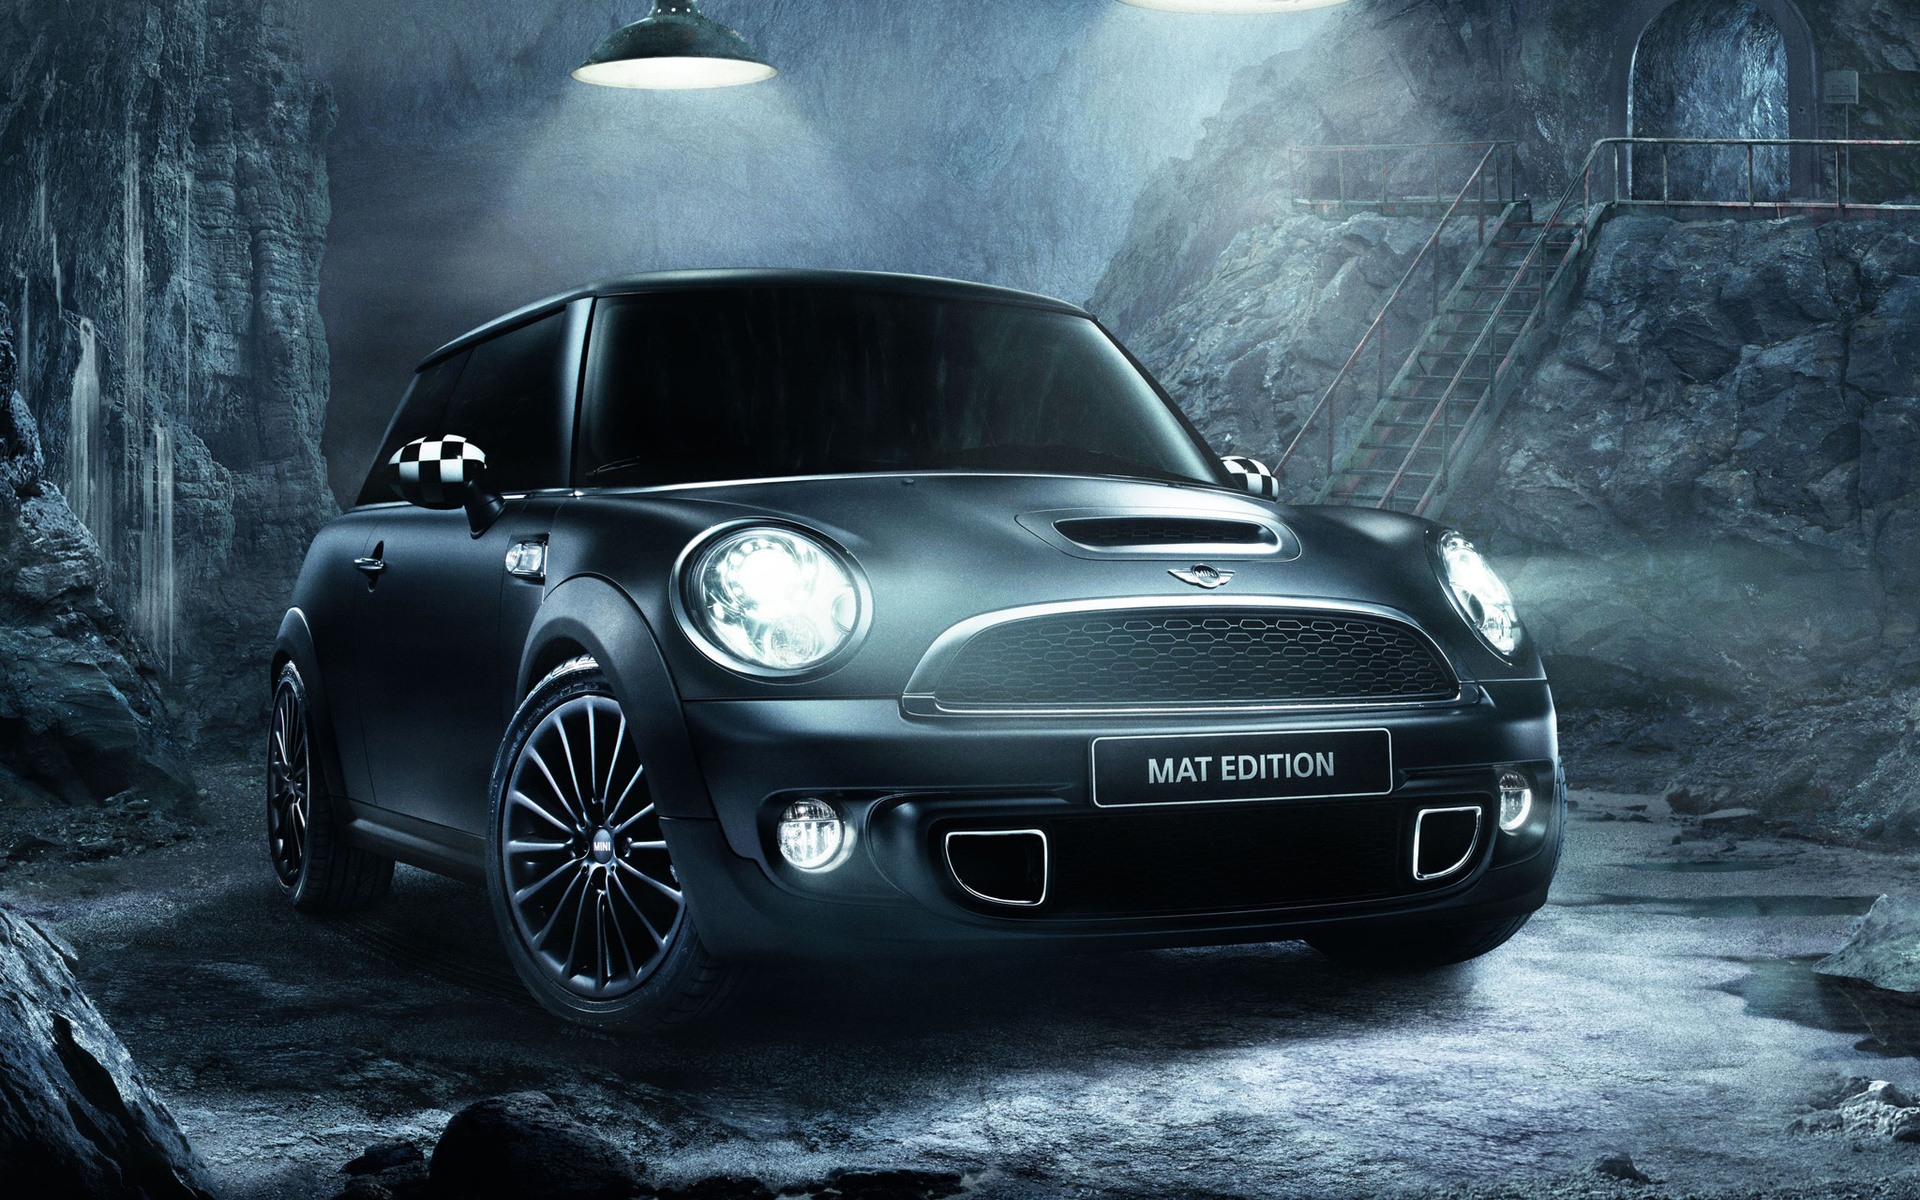 mini cooper wallpapers, pictures, images